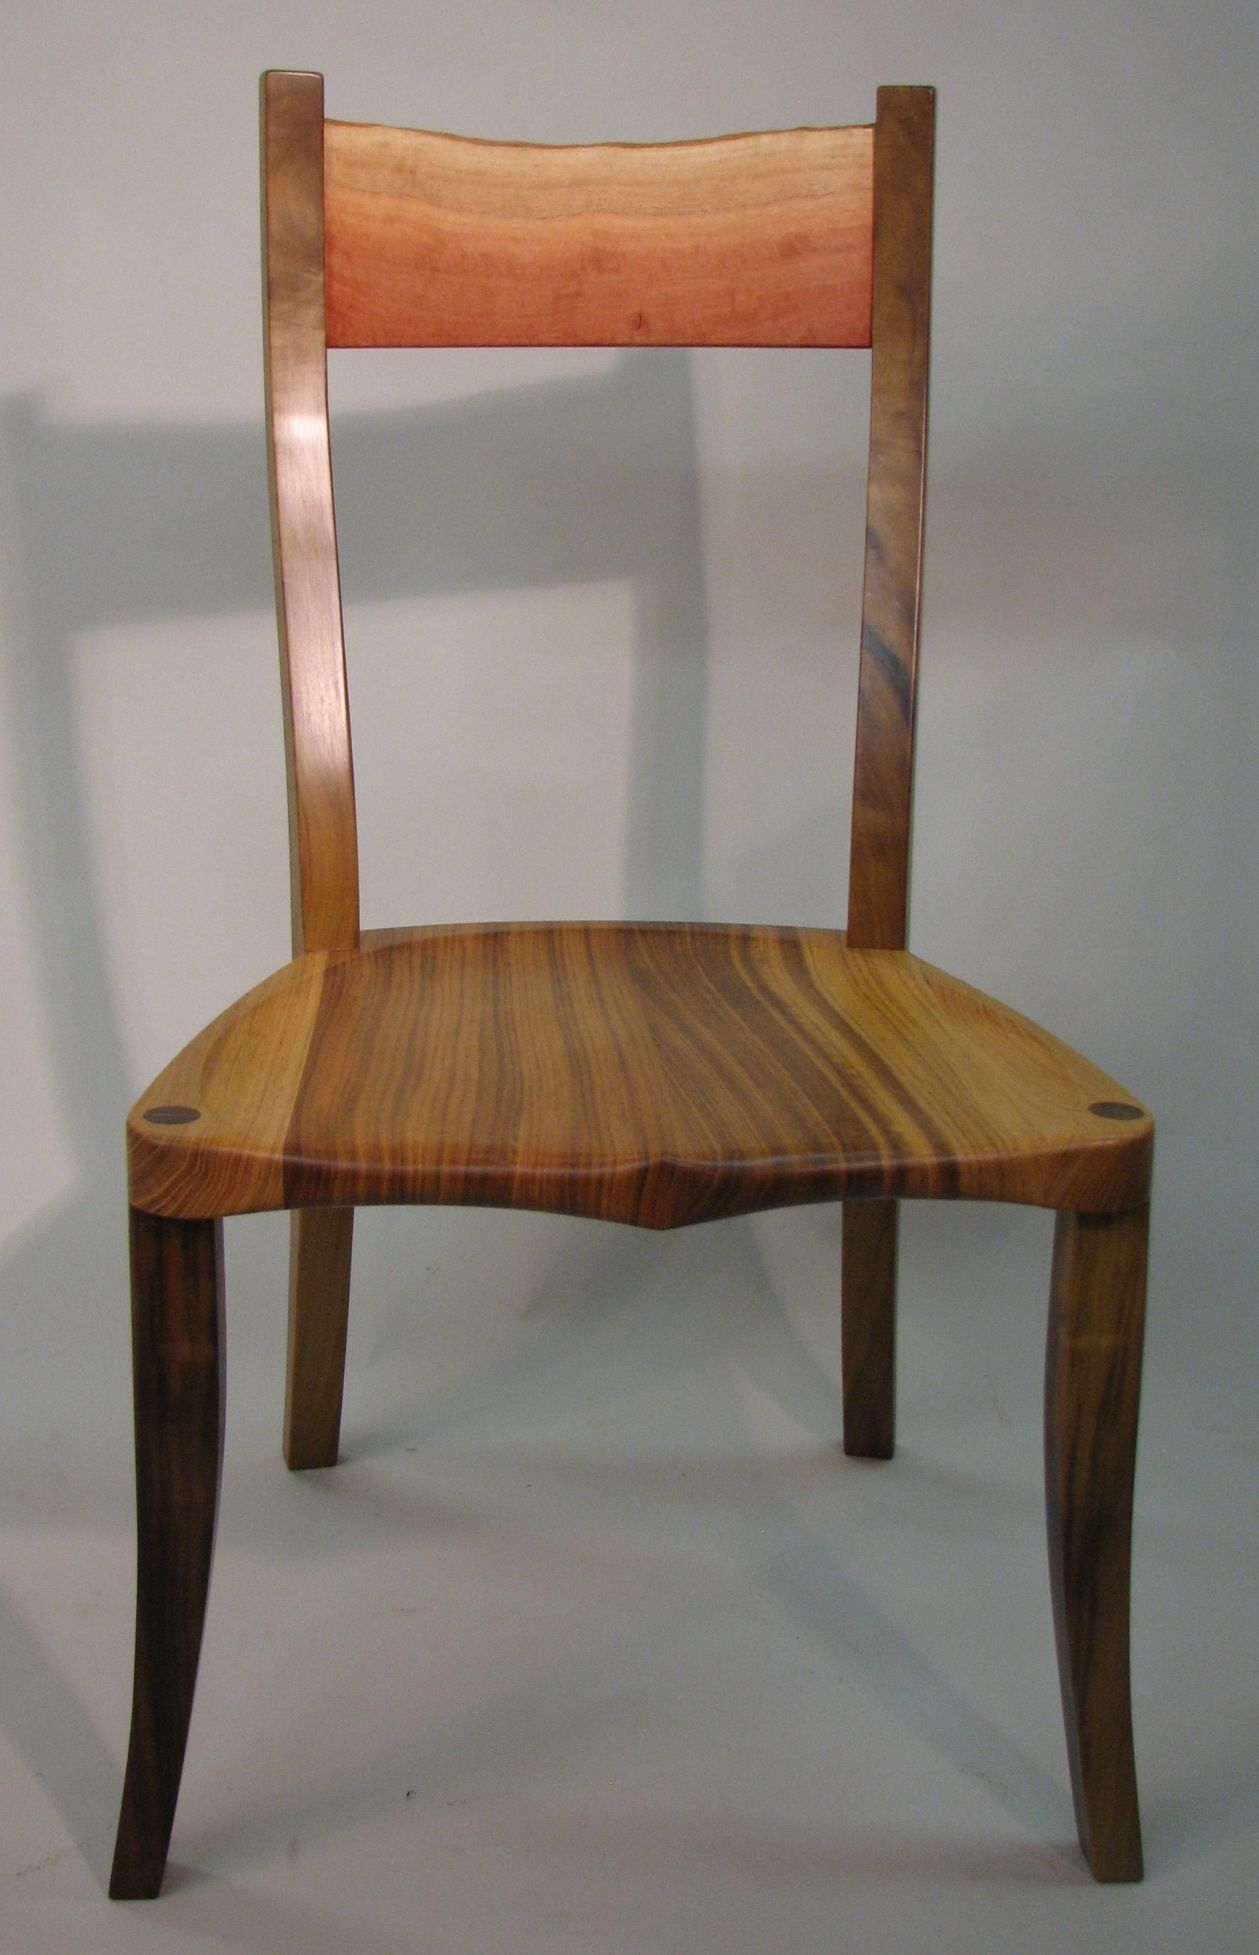 Made Of Walnut And Black Locust And A Rail Out Of Red Gum Eucalyptus It Looks Like A Sunrise Over A Field Of Grain Artisan Furniture Heirloom Furniture Chair